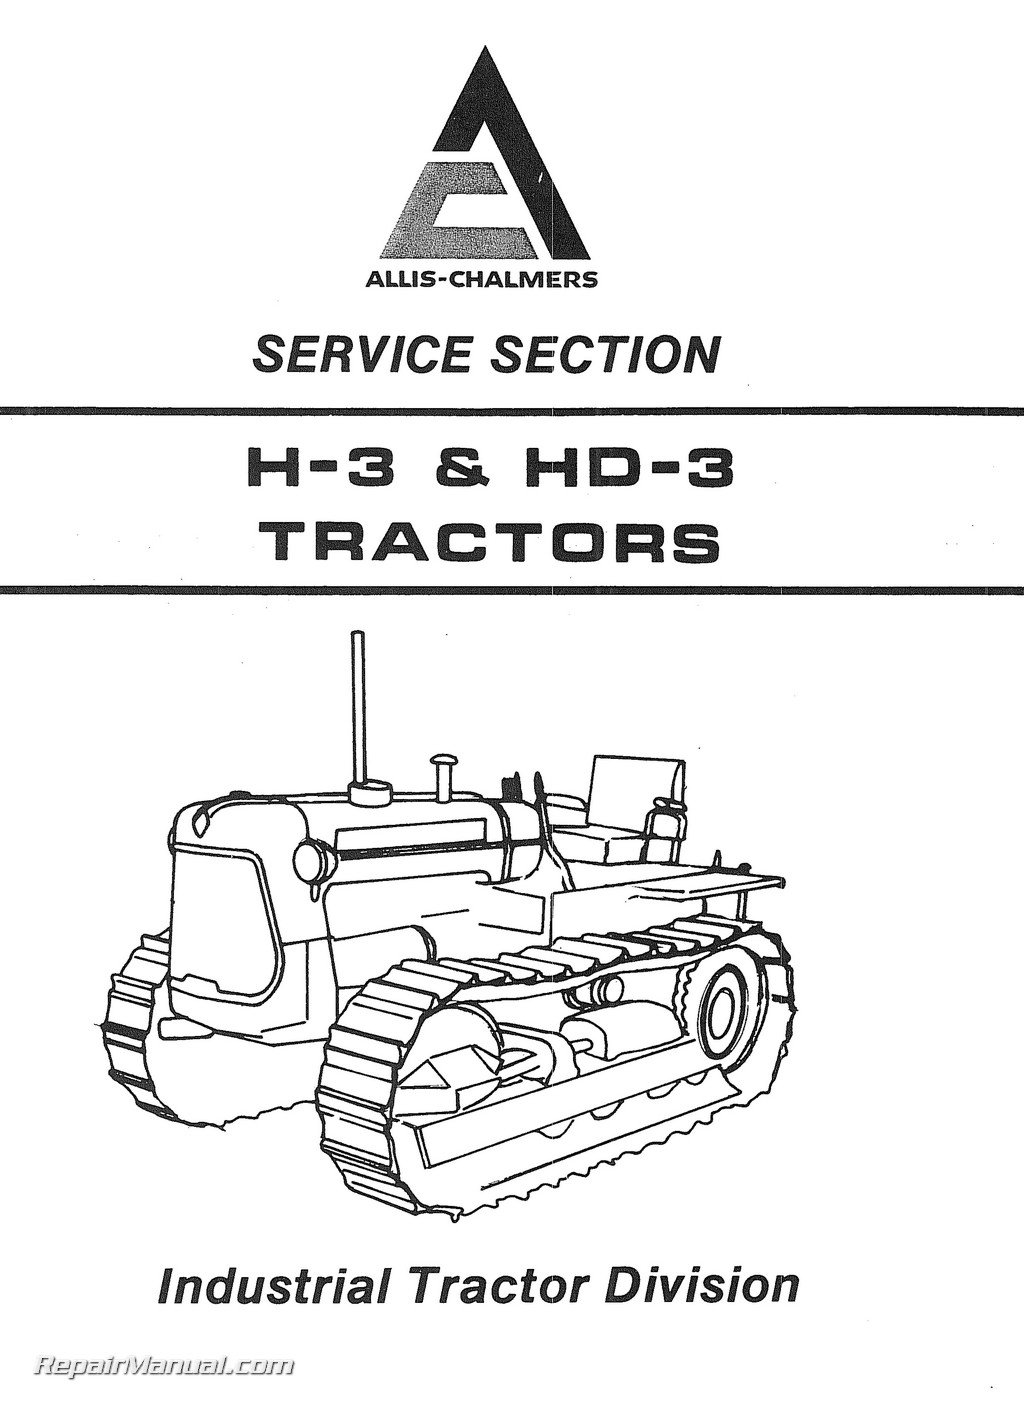 AC-S-H3-HD3 Allis Chalmers H3 HD3 Tractor Service Manual ...